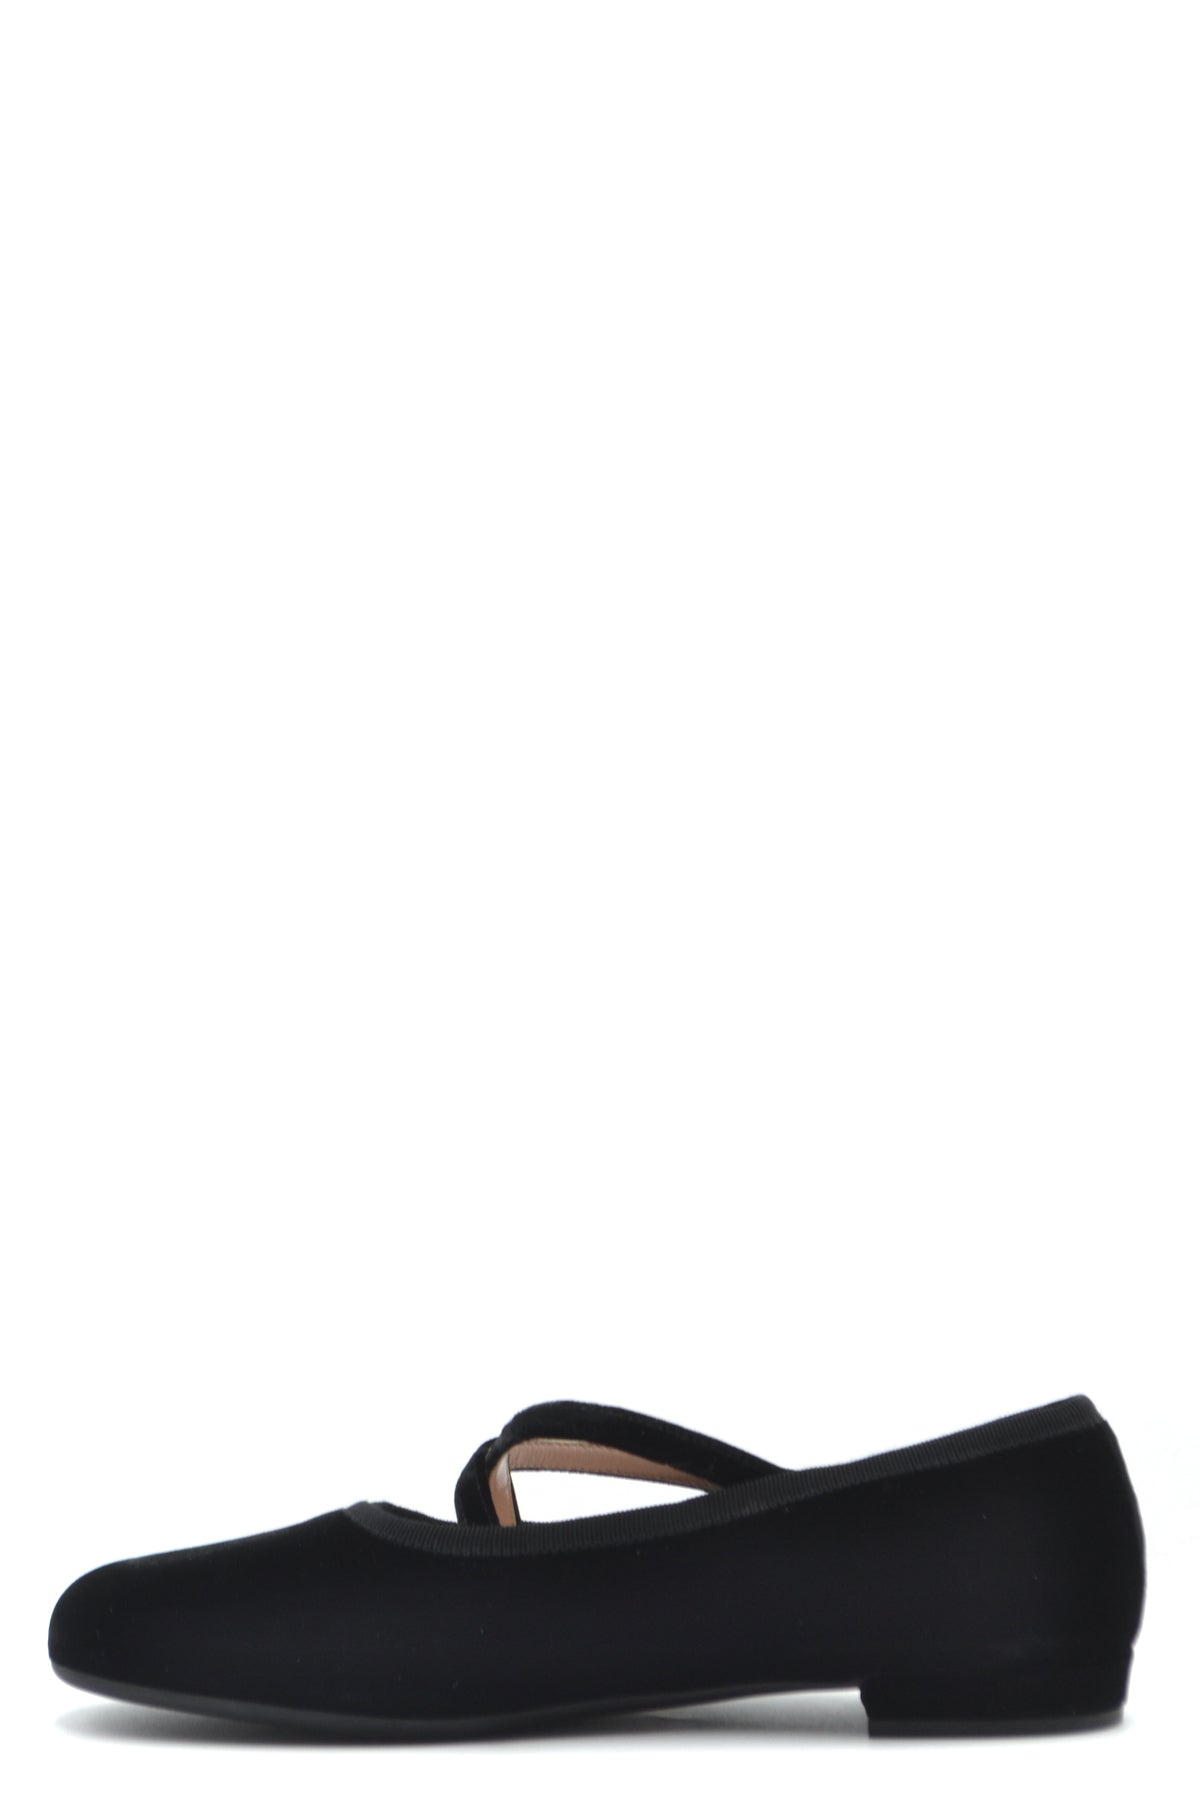 Shoes Miu Miu-Women's Fashion - Women's Shoes - Women's Flats-Product Details Terms: New With LabelMain Color: BlackType Of Accessory: ShoesSeason: Fall / WinterMade In: ItalyGender: WomanSize: EuComposition: Velvet 100%Year: 2020Manufacturer Part Number: 5F873C Lssz F0002-Keyomi-Sook